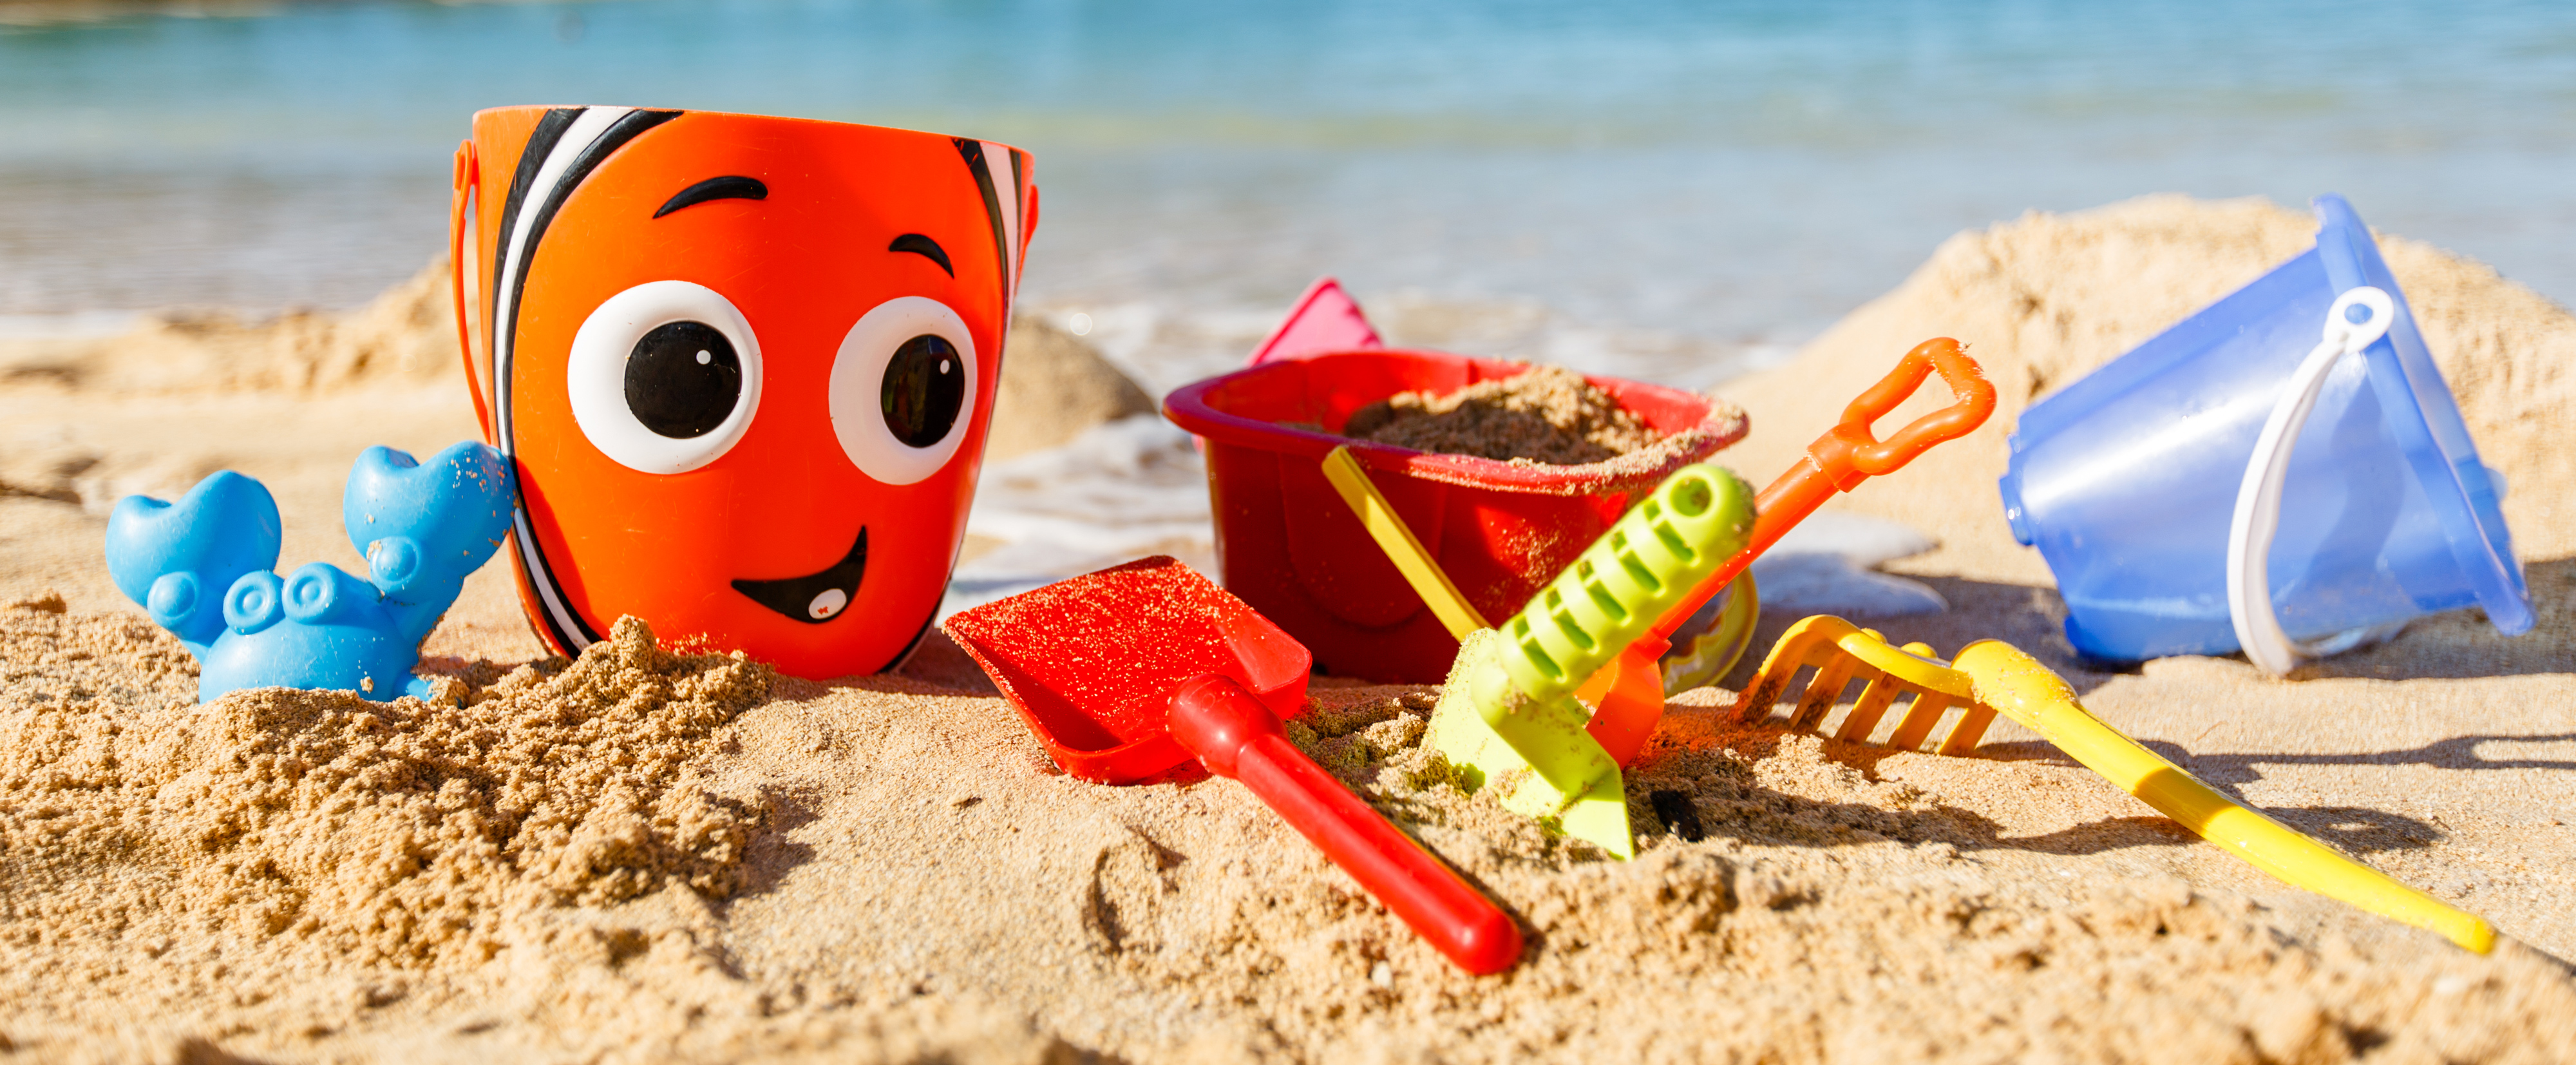 Colorful sand toys on the beach, including a Nemo bucket, a blue crab and various shoveling tools